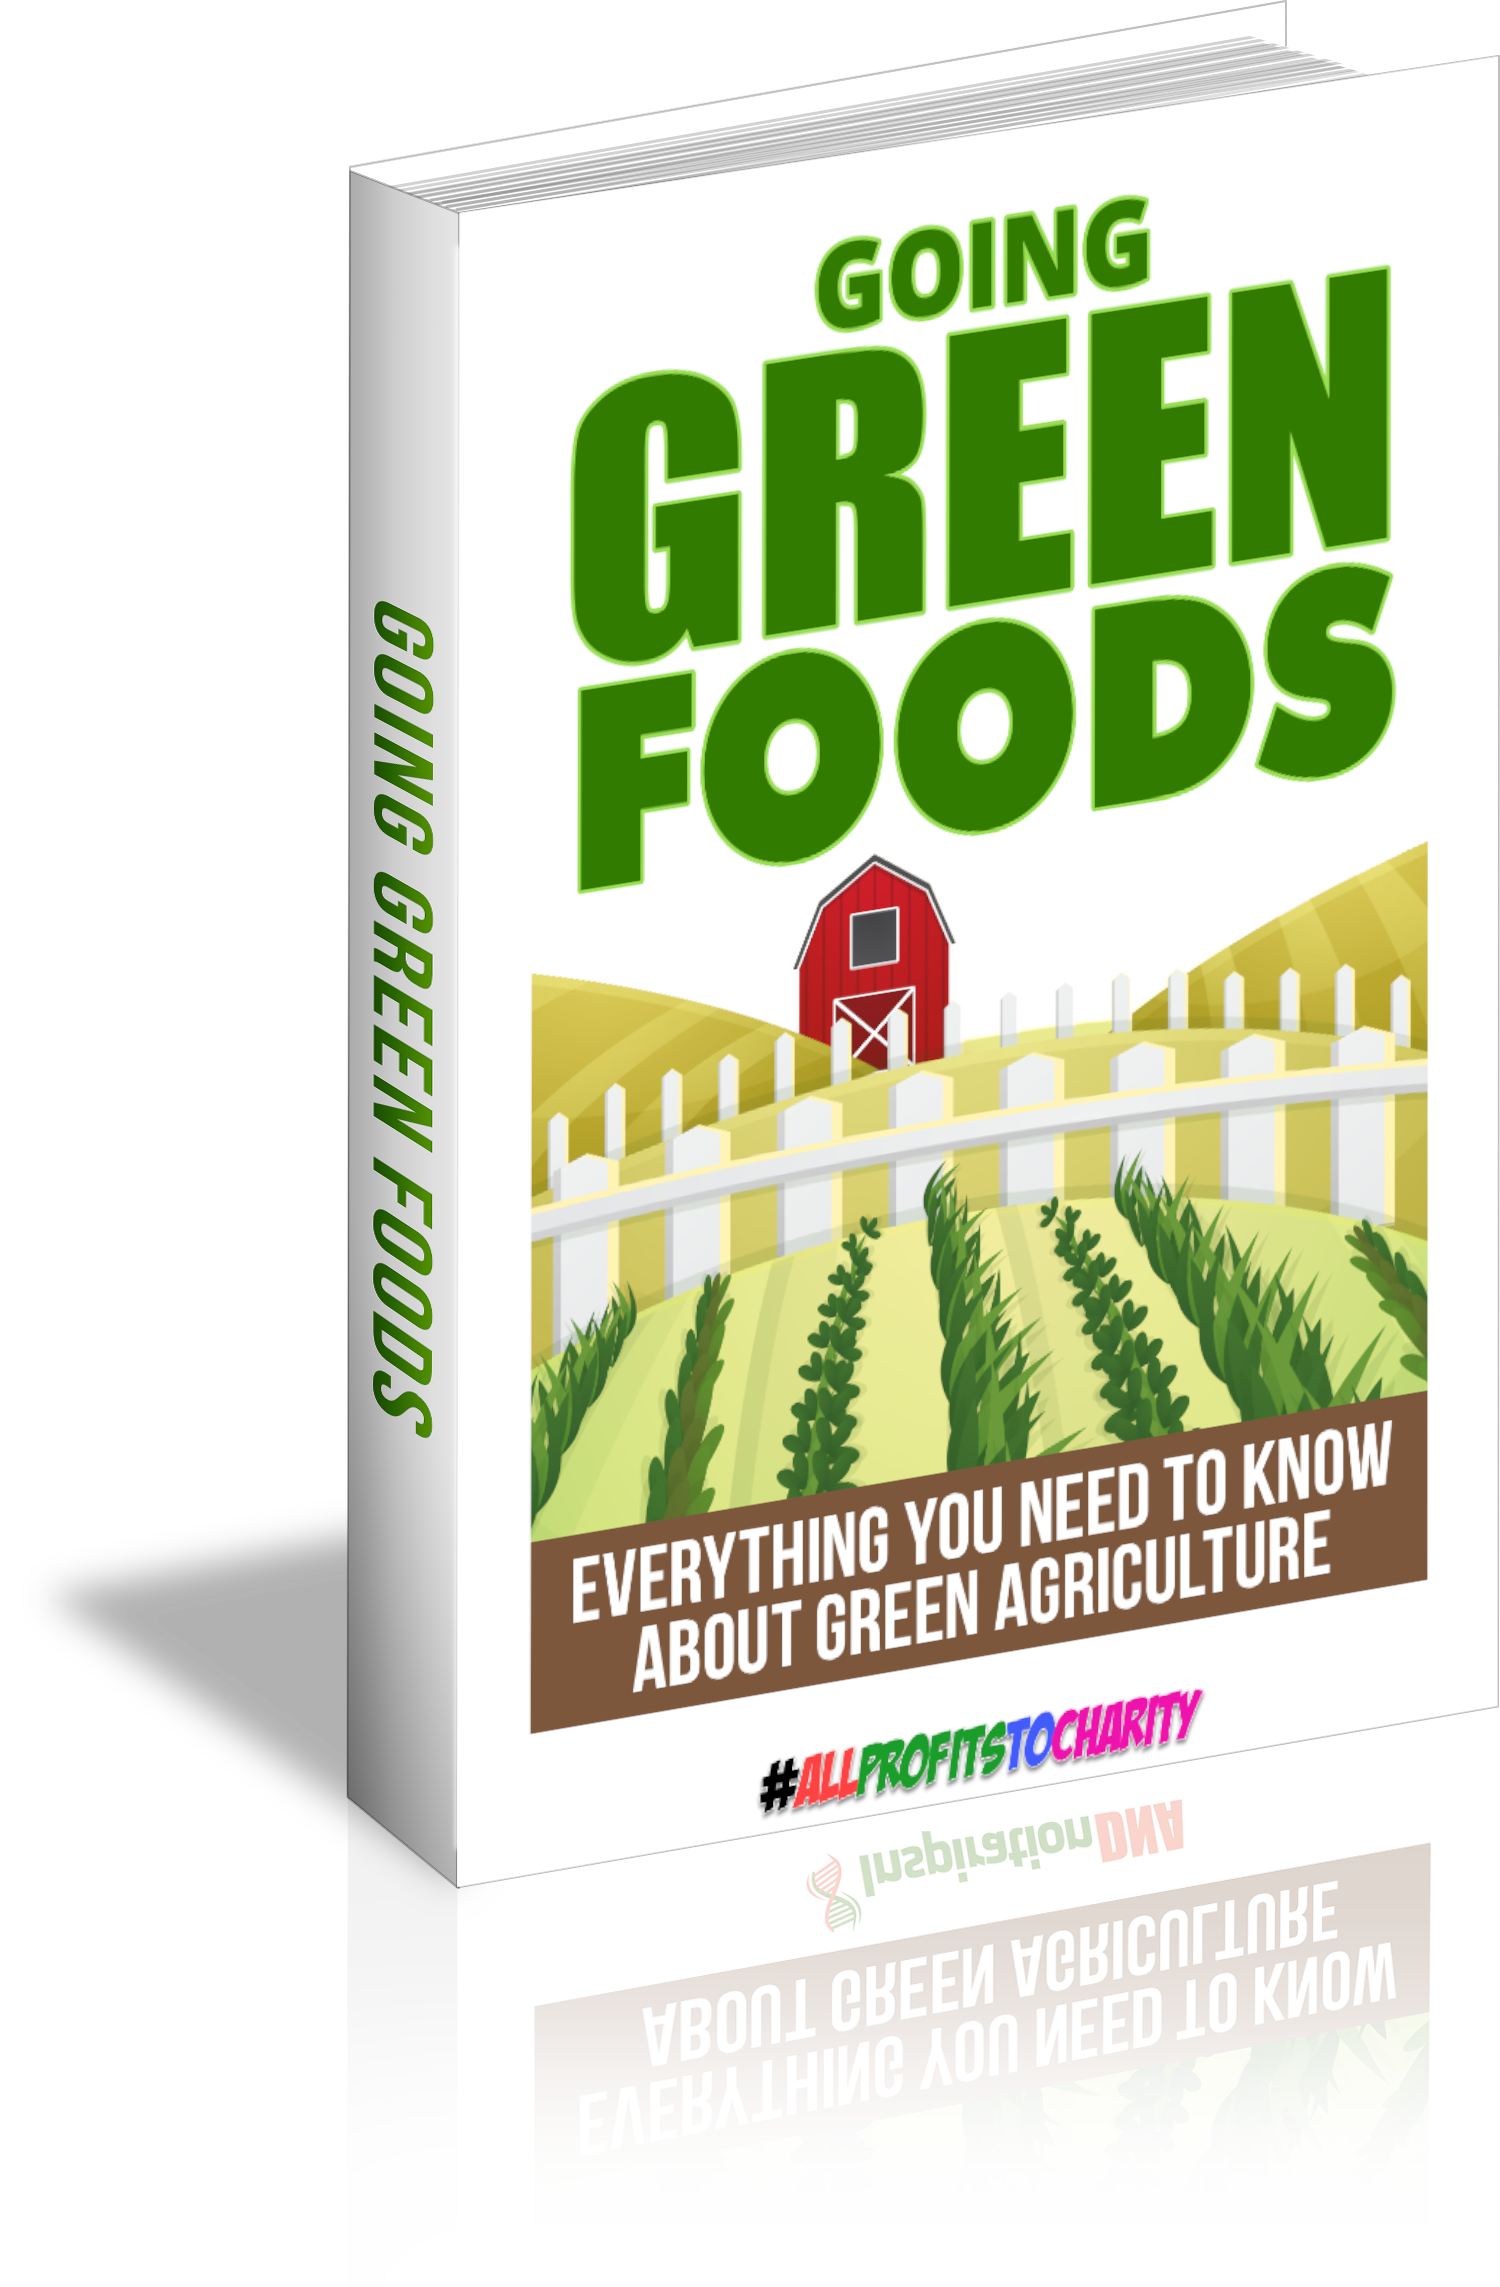 Going Green foods cover